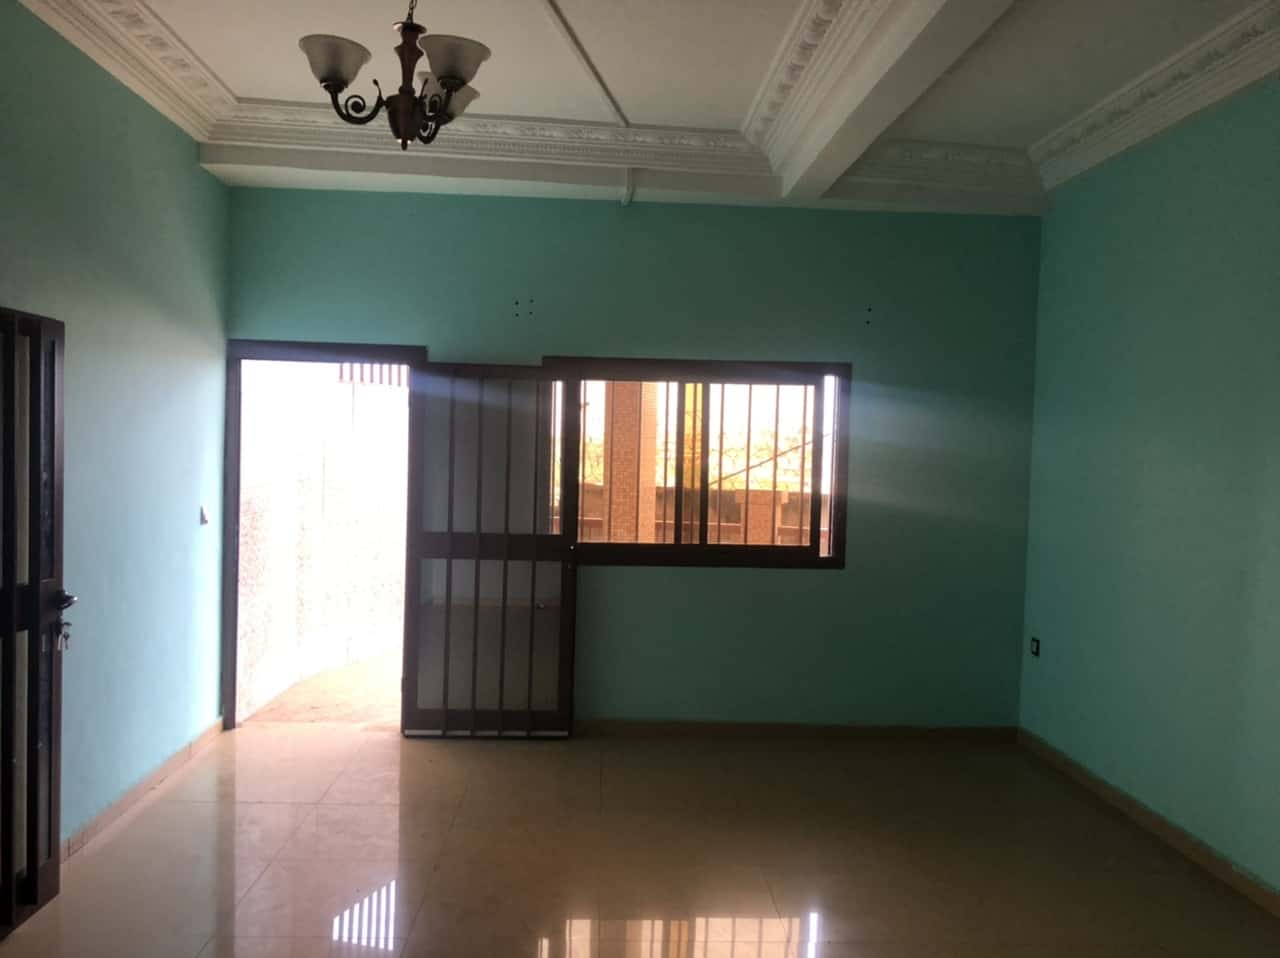 Apartment to rent - Yaoundé, Mfandena, Titi Garage - 1 living room(s), 2 bedroom(s), 2 bathroom(s) - 200 000 FCFA / month